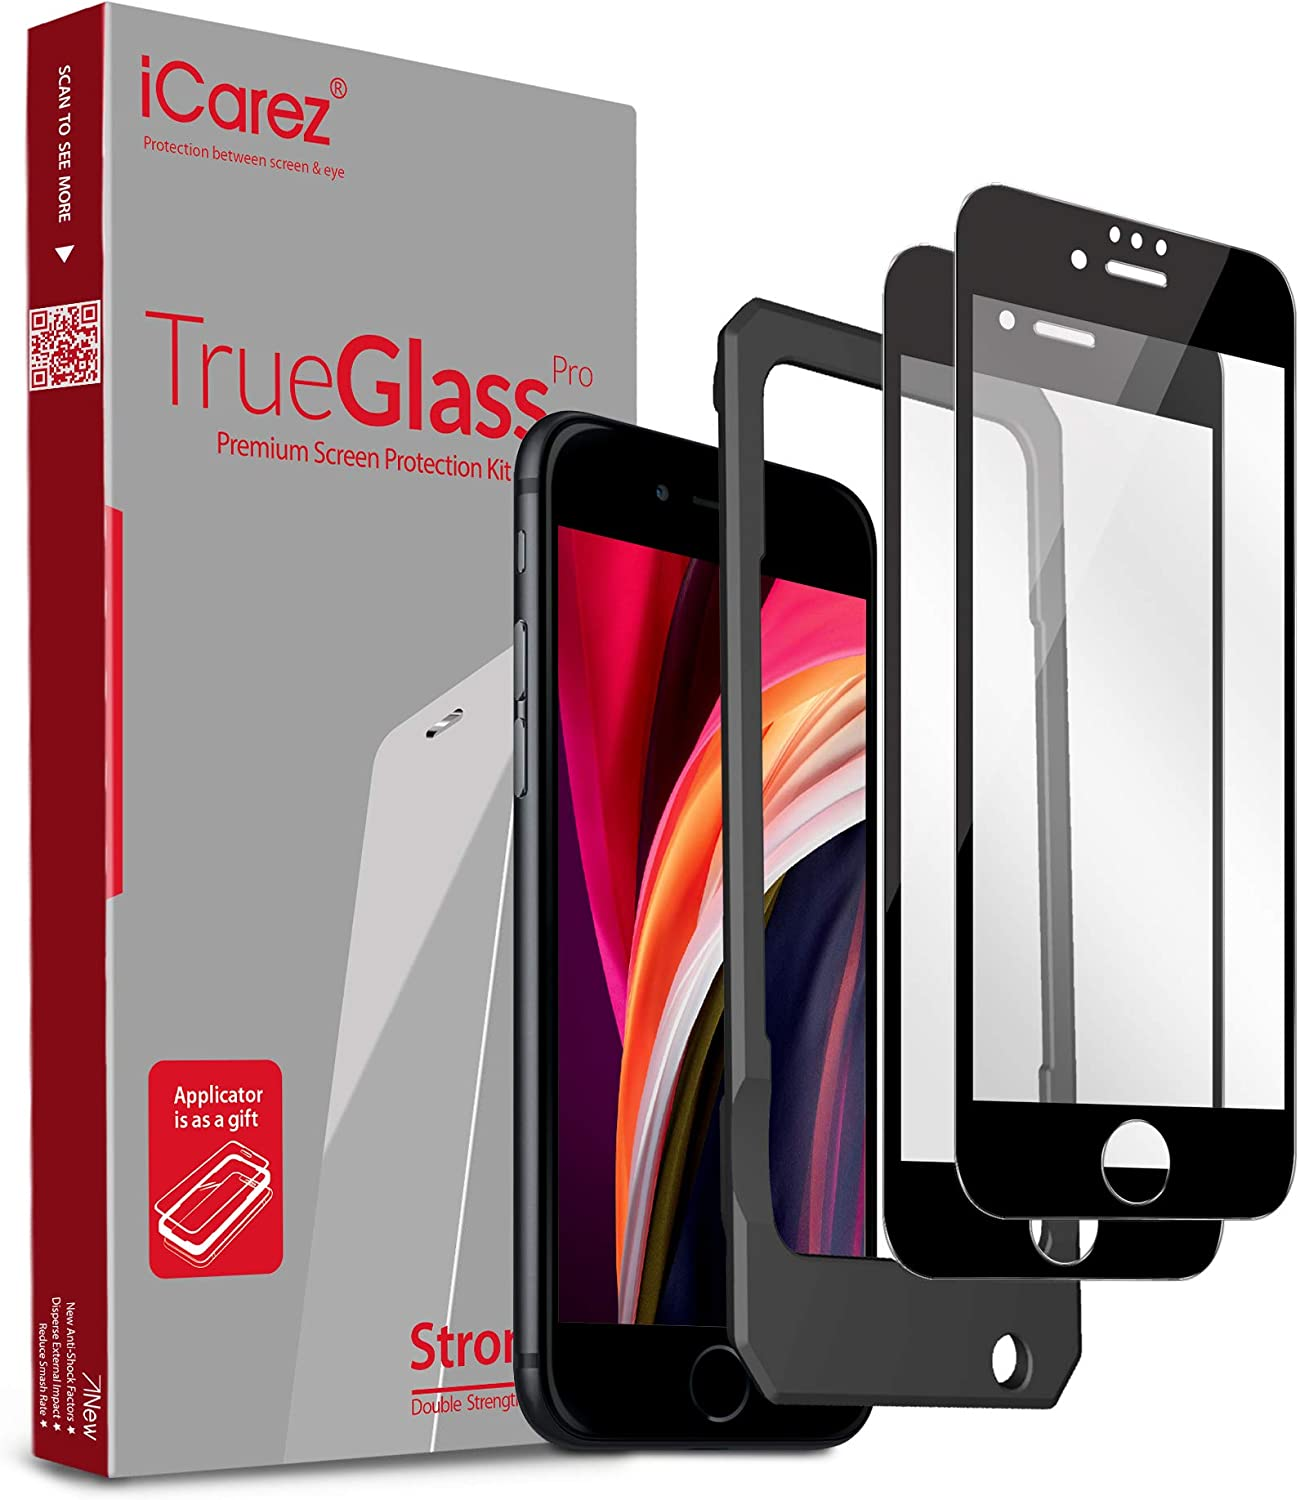 iCarez Tempered Glass Screen Protector for iPhone SE 2020 4.7-inches, 2-Pack Full Coverage